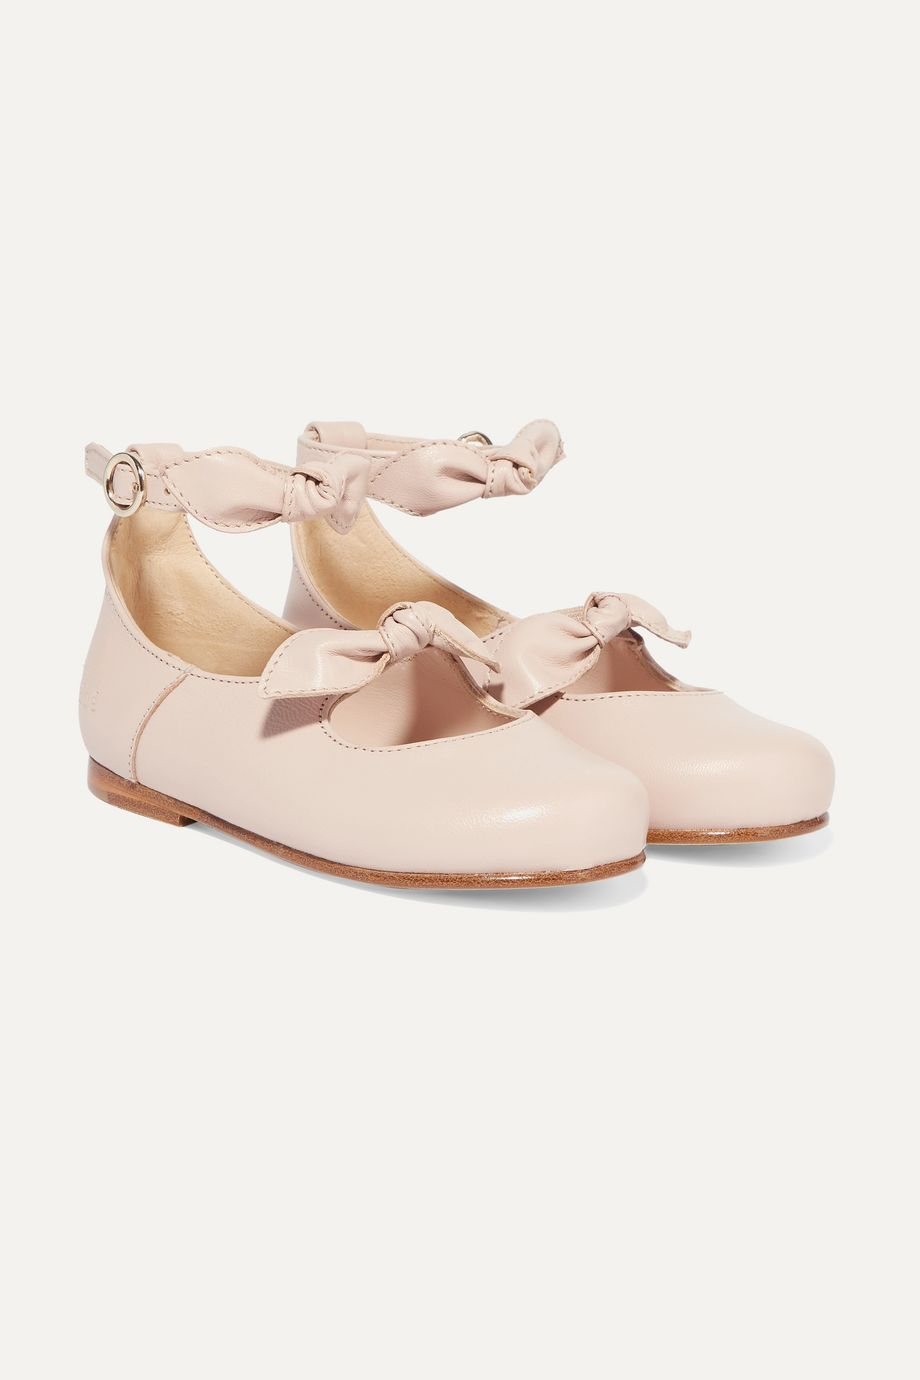 Chloé Kids Sizes 22 - 24 bow-detailed leather ballet flats